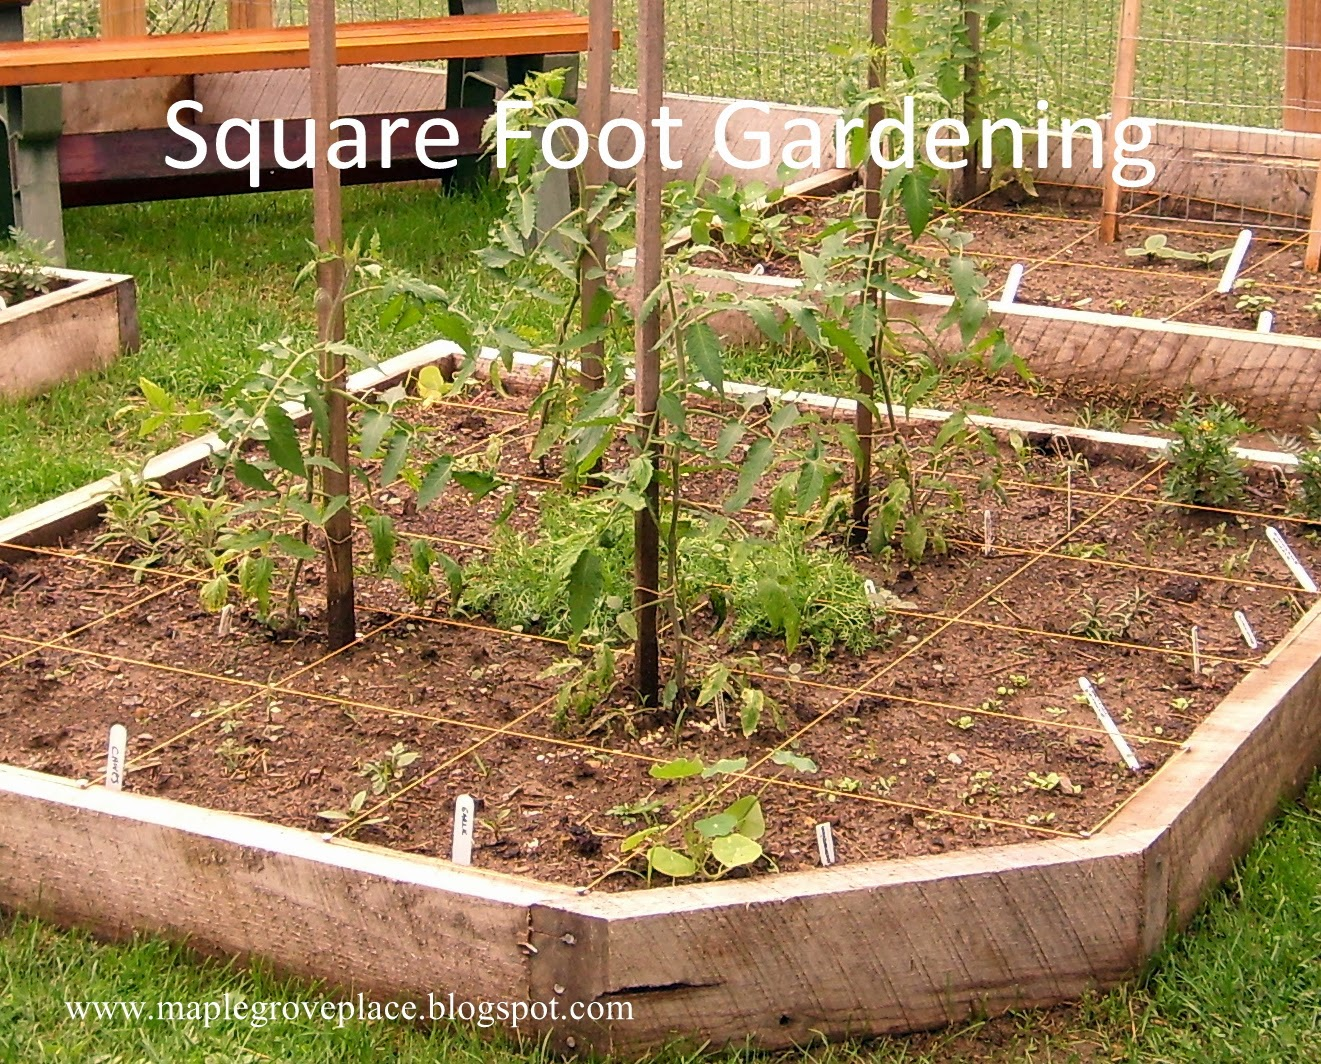 Layout Of Kitchen Garden Watch More Like How Square Foot Gardening